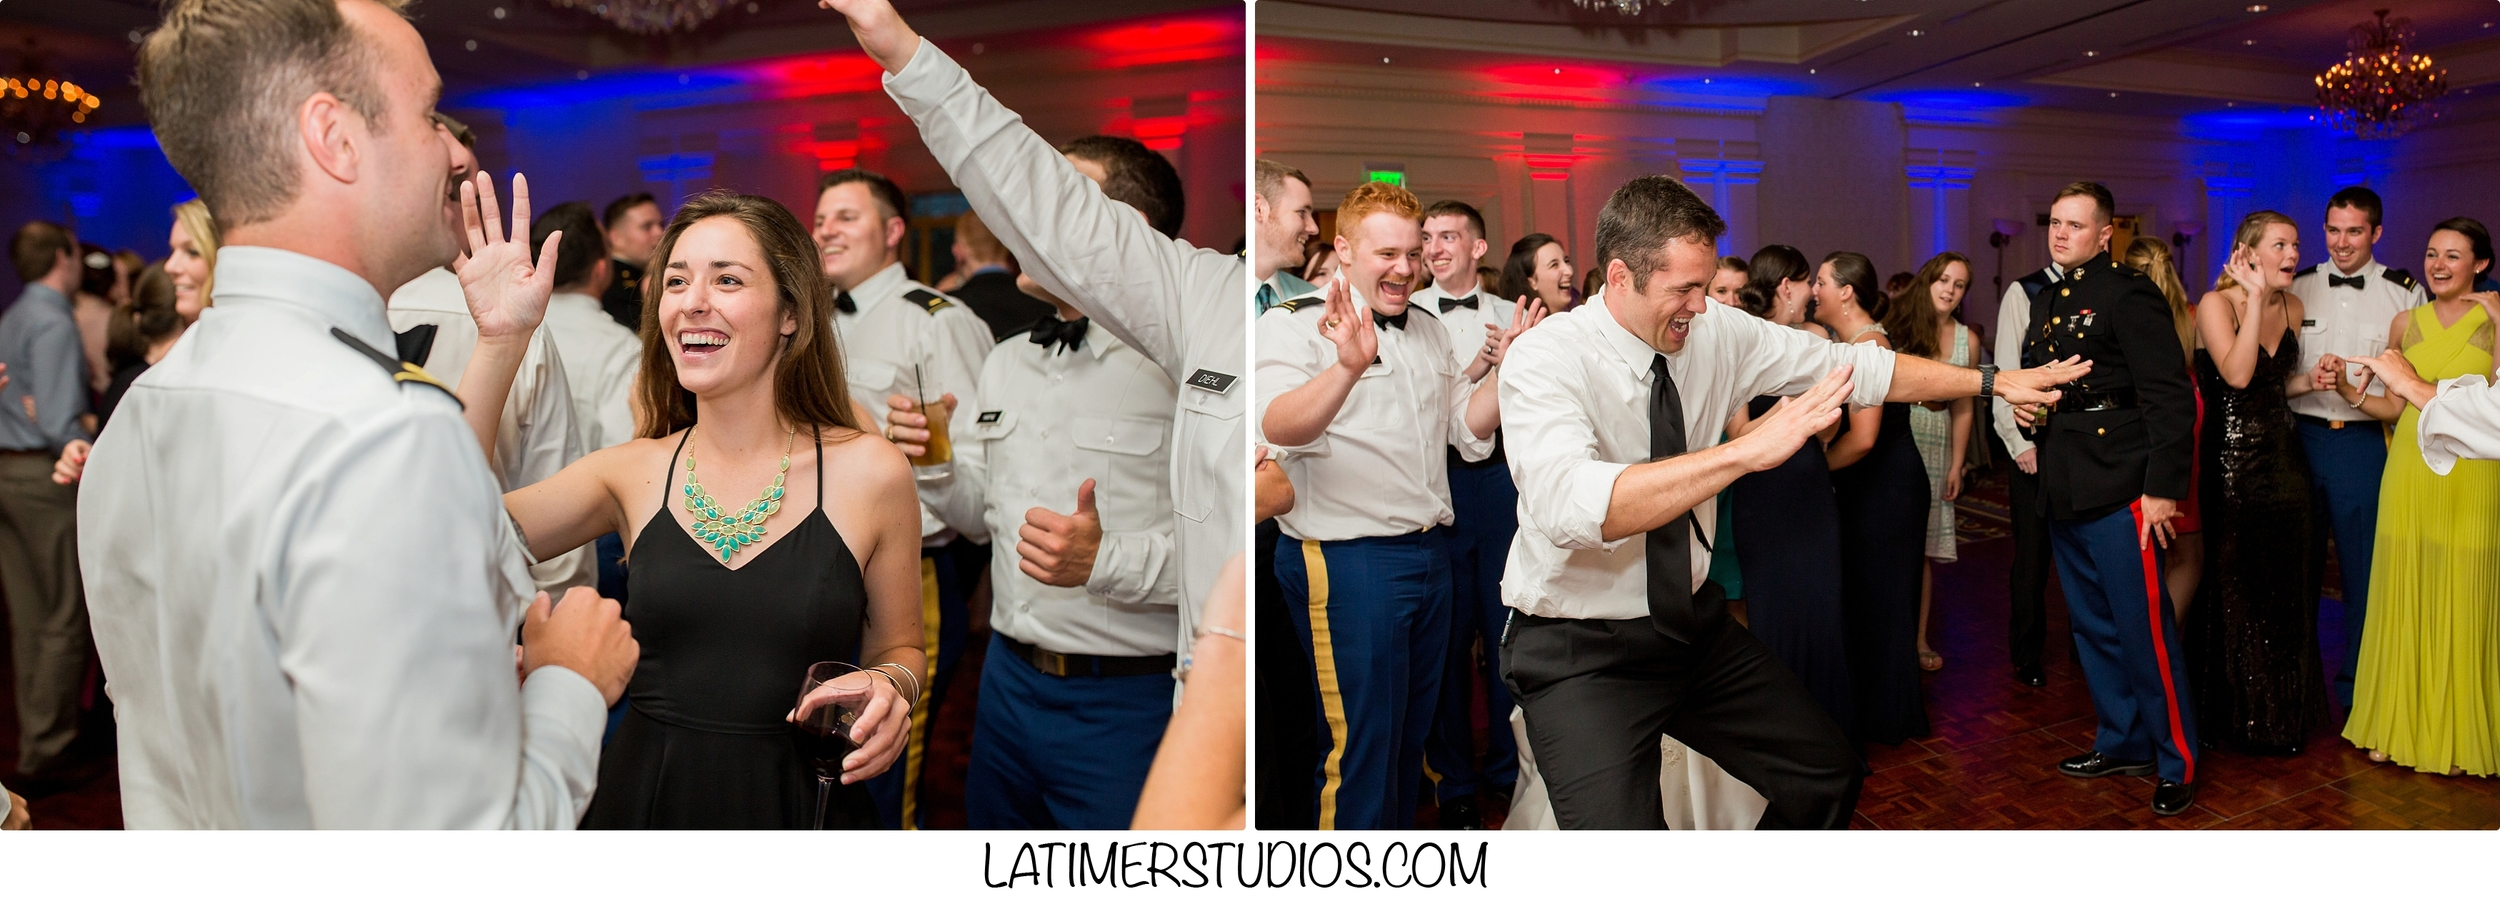 Latimer Studios Photography capturing dancing at a wedding at Wentworth by the Sea in Rye NH